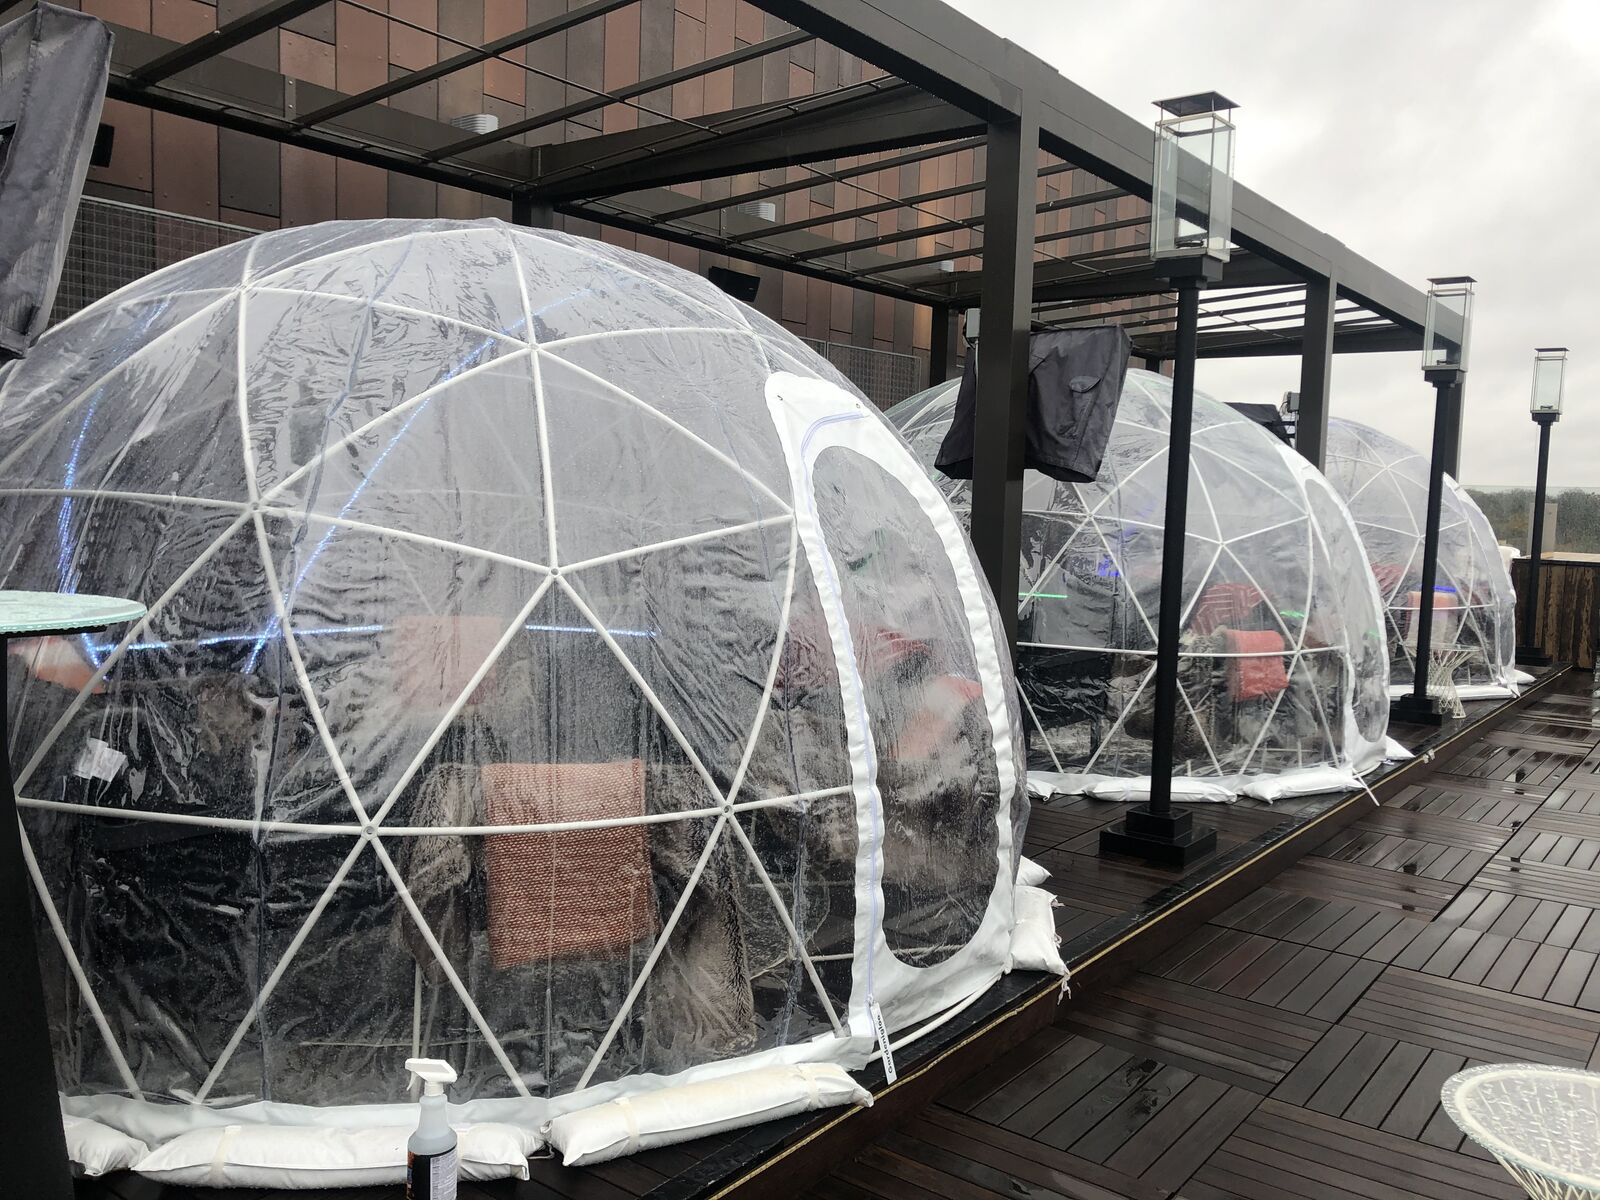 They've been a hit for the past few years in Dublin. Vaso's outdoor dining igloos will be back this year and are currently under construction. (WSYX/WTTE)